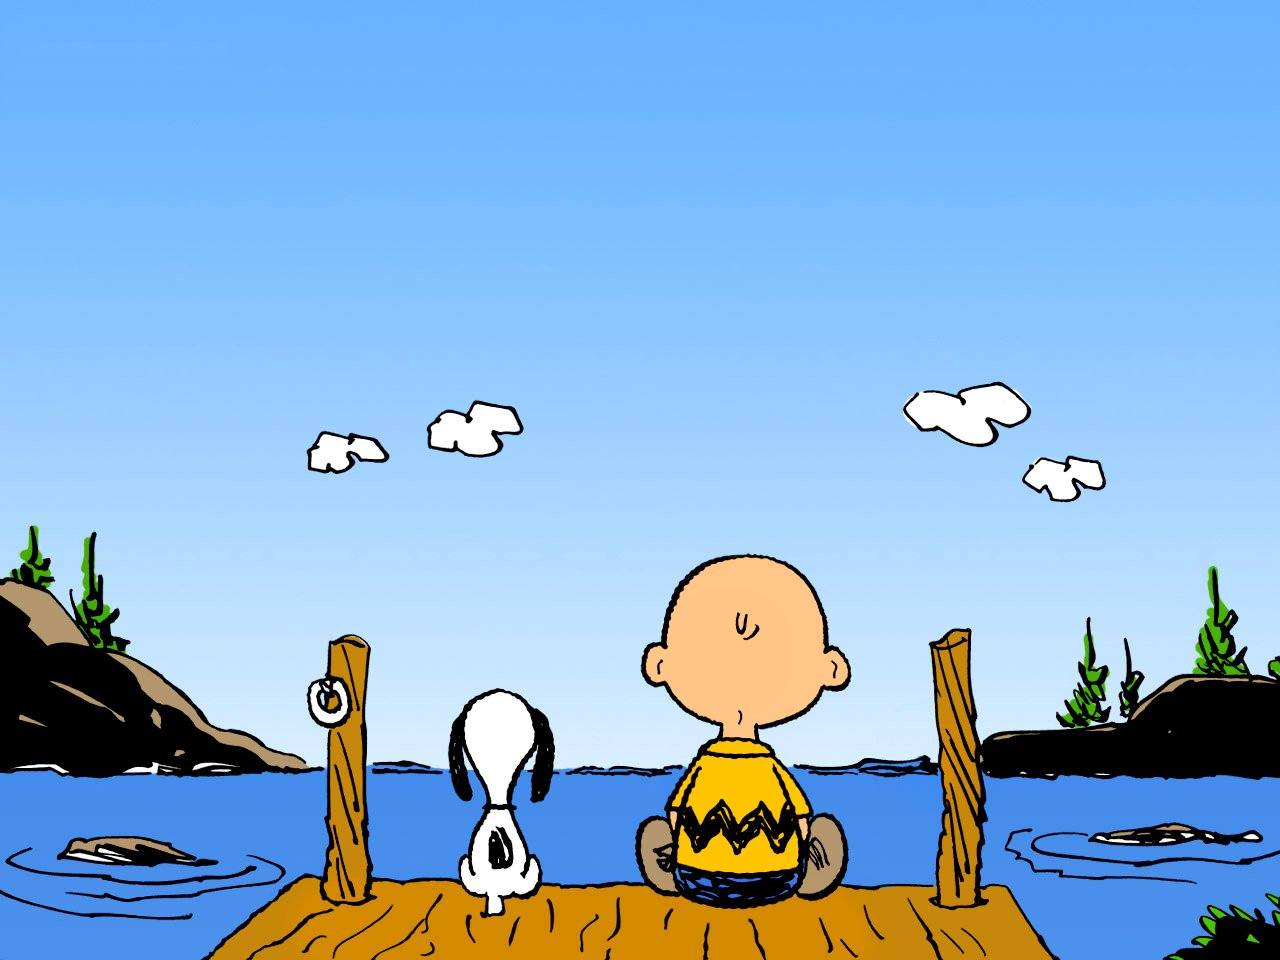 Cute Charlie Brown Wallpaper 1280x960 18180